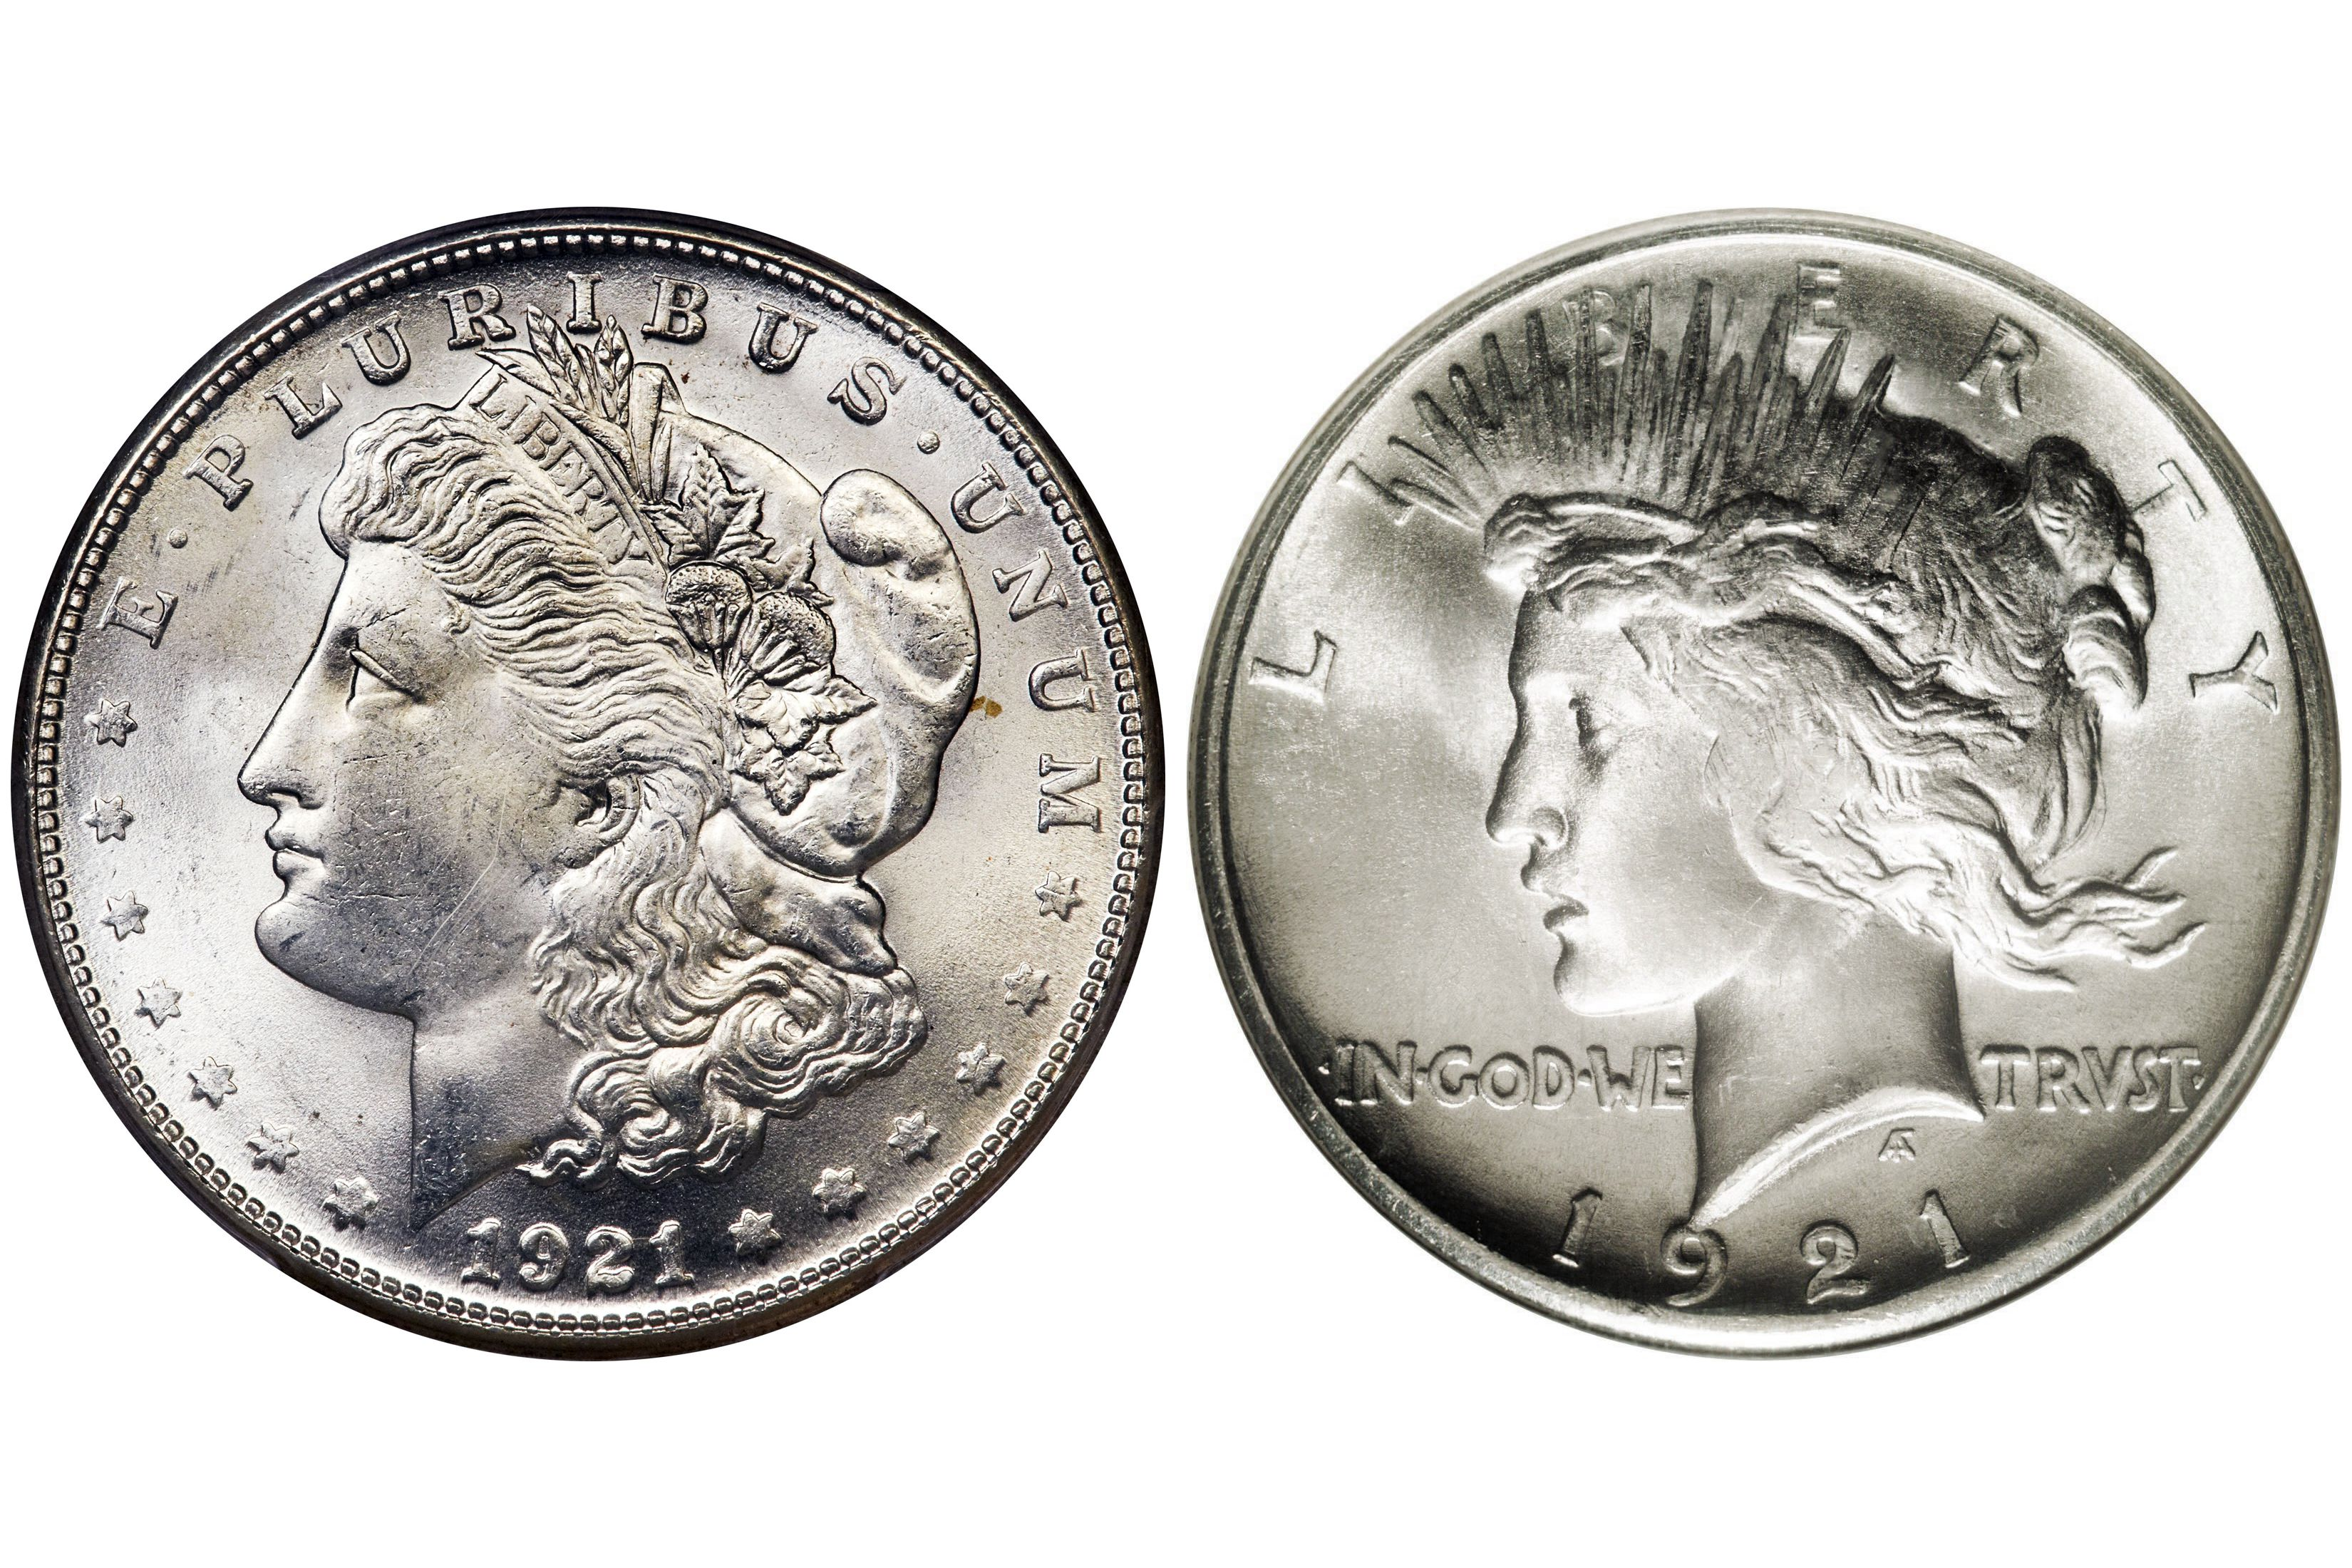 1921 Two Different Silver Dollar Designs